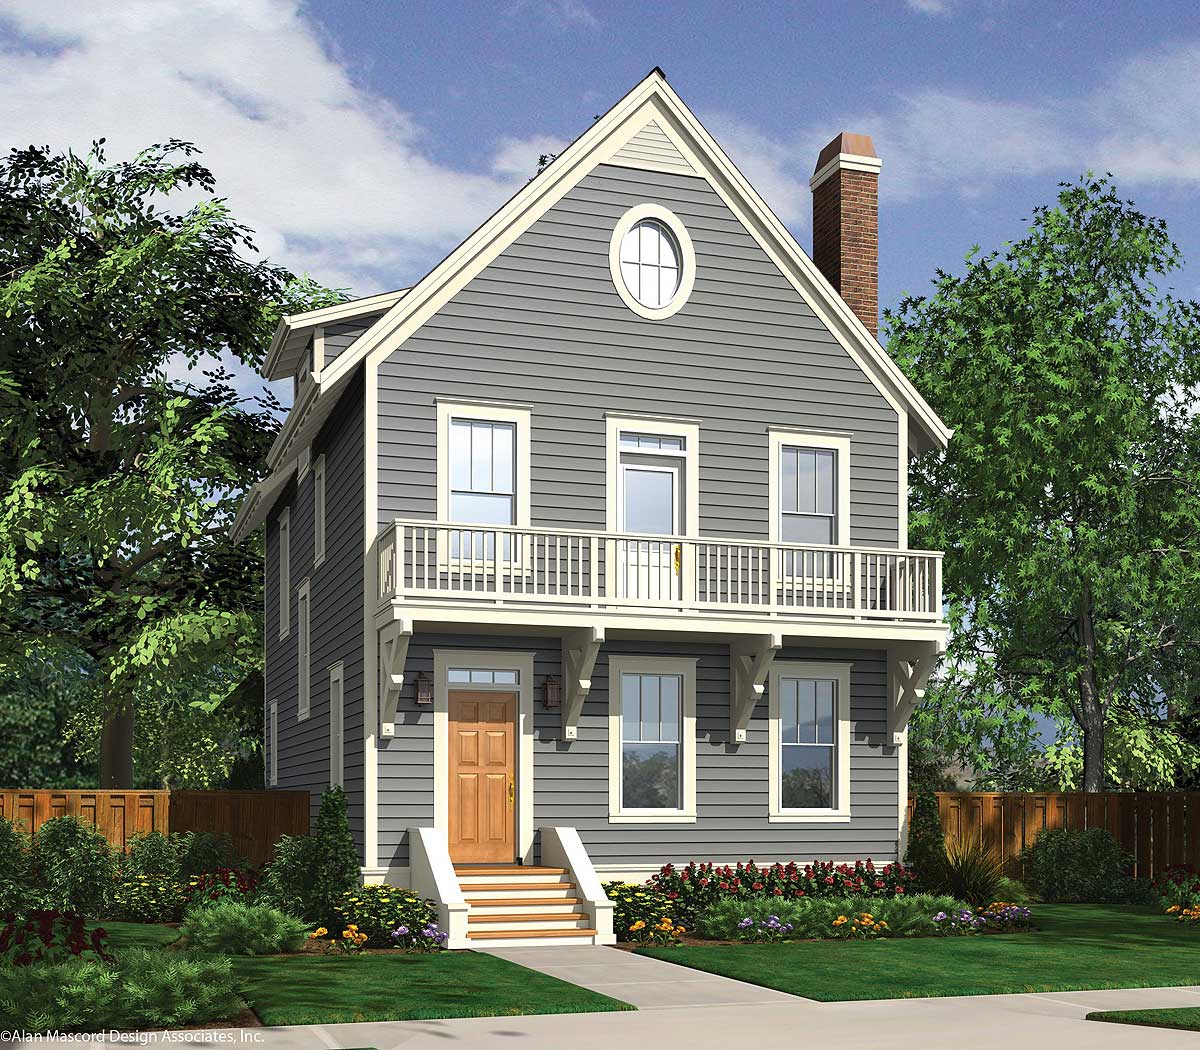 Picturesque 3 Story House Plan - 69591AM